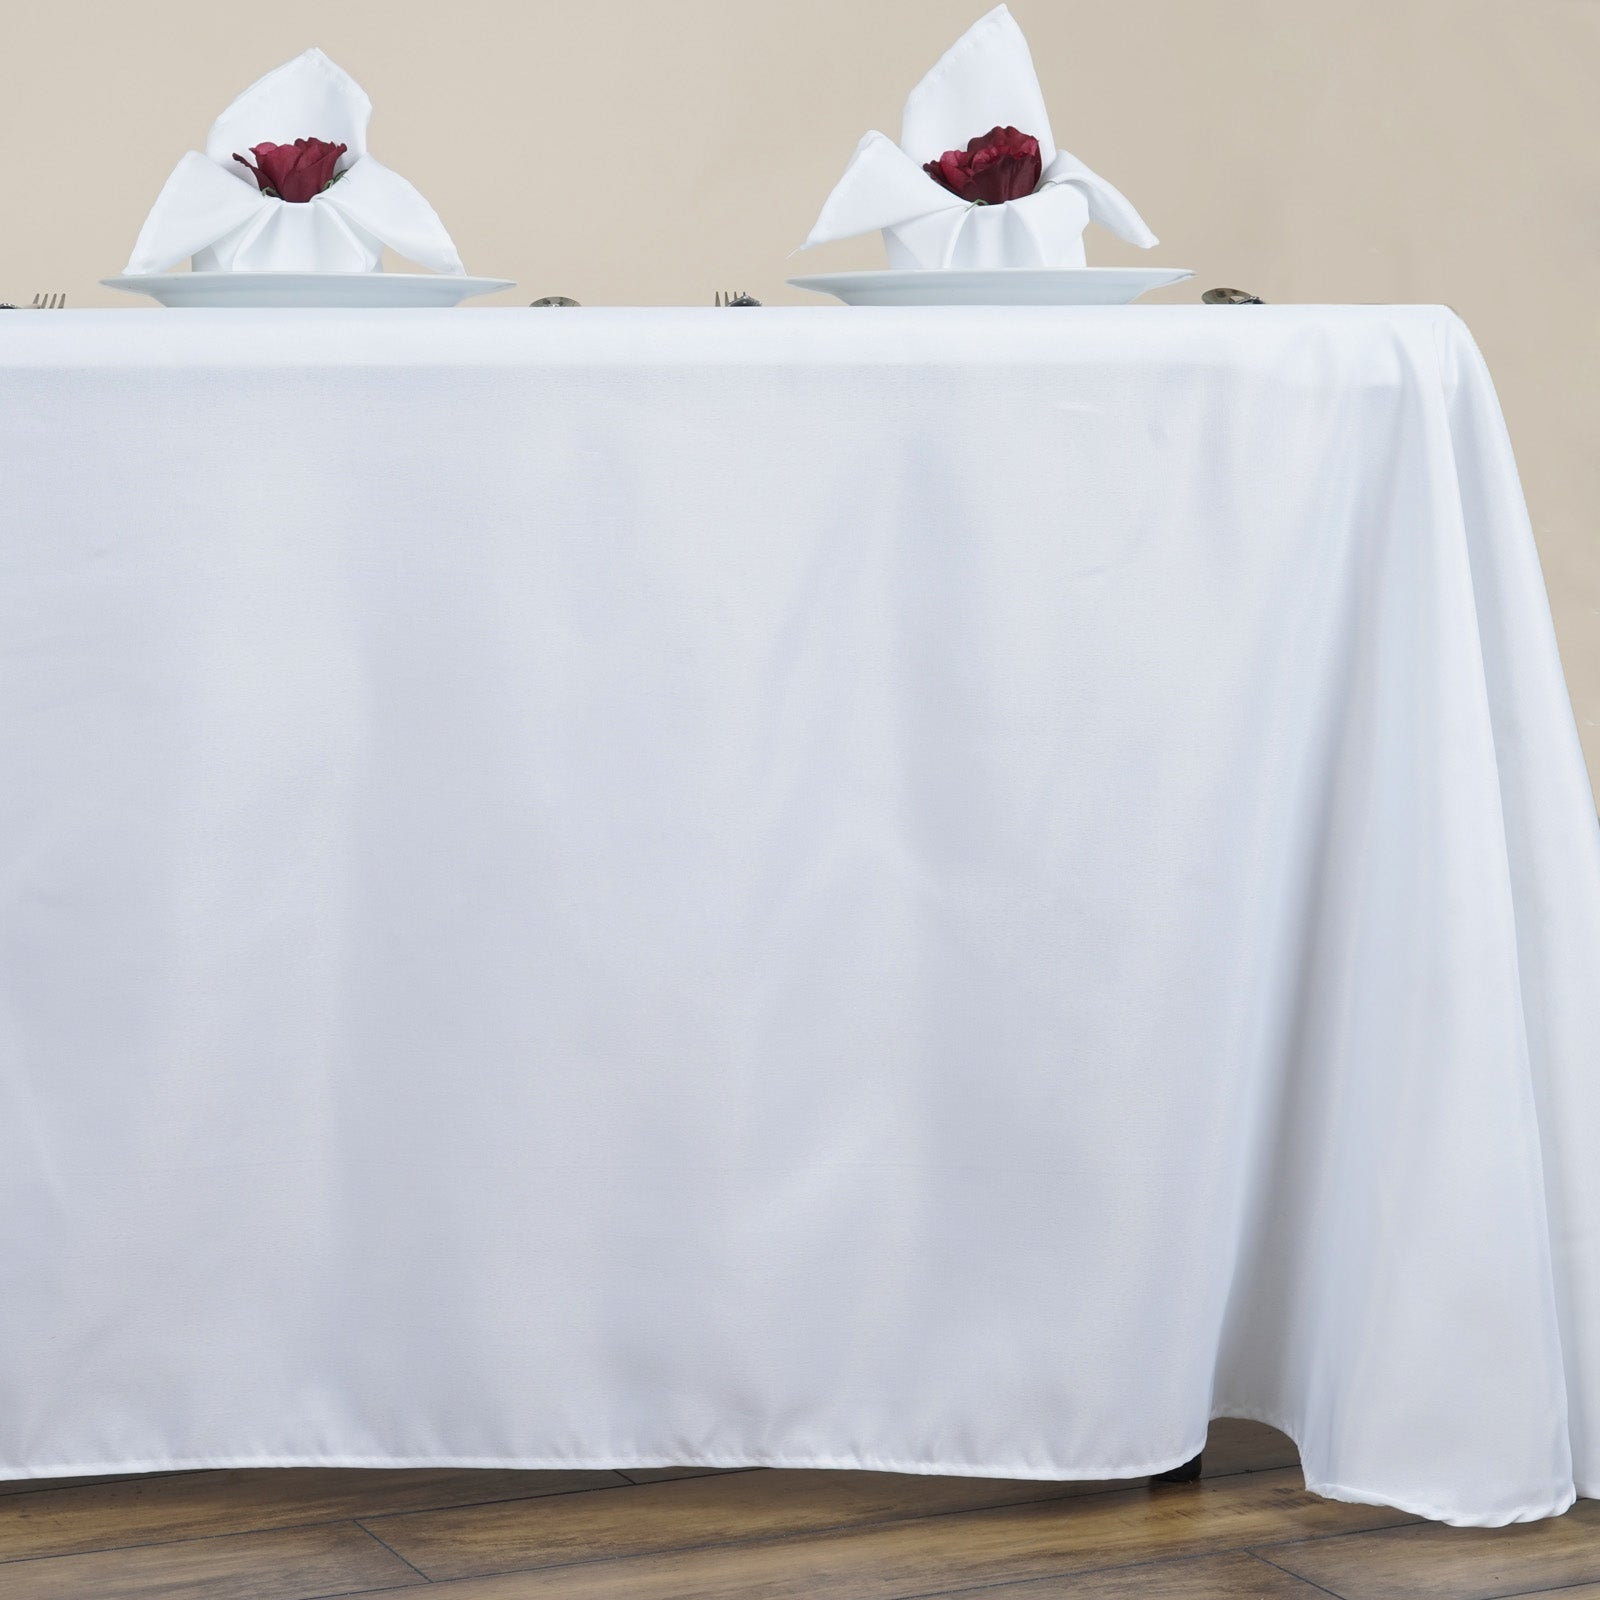 90x156 white polyester round corner linen party tablecloth tablecloths factory. Black Bedroom Furniture Sets. Home Design Ideas